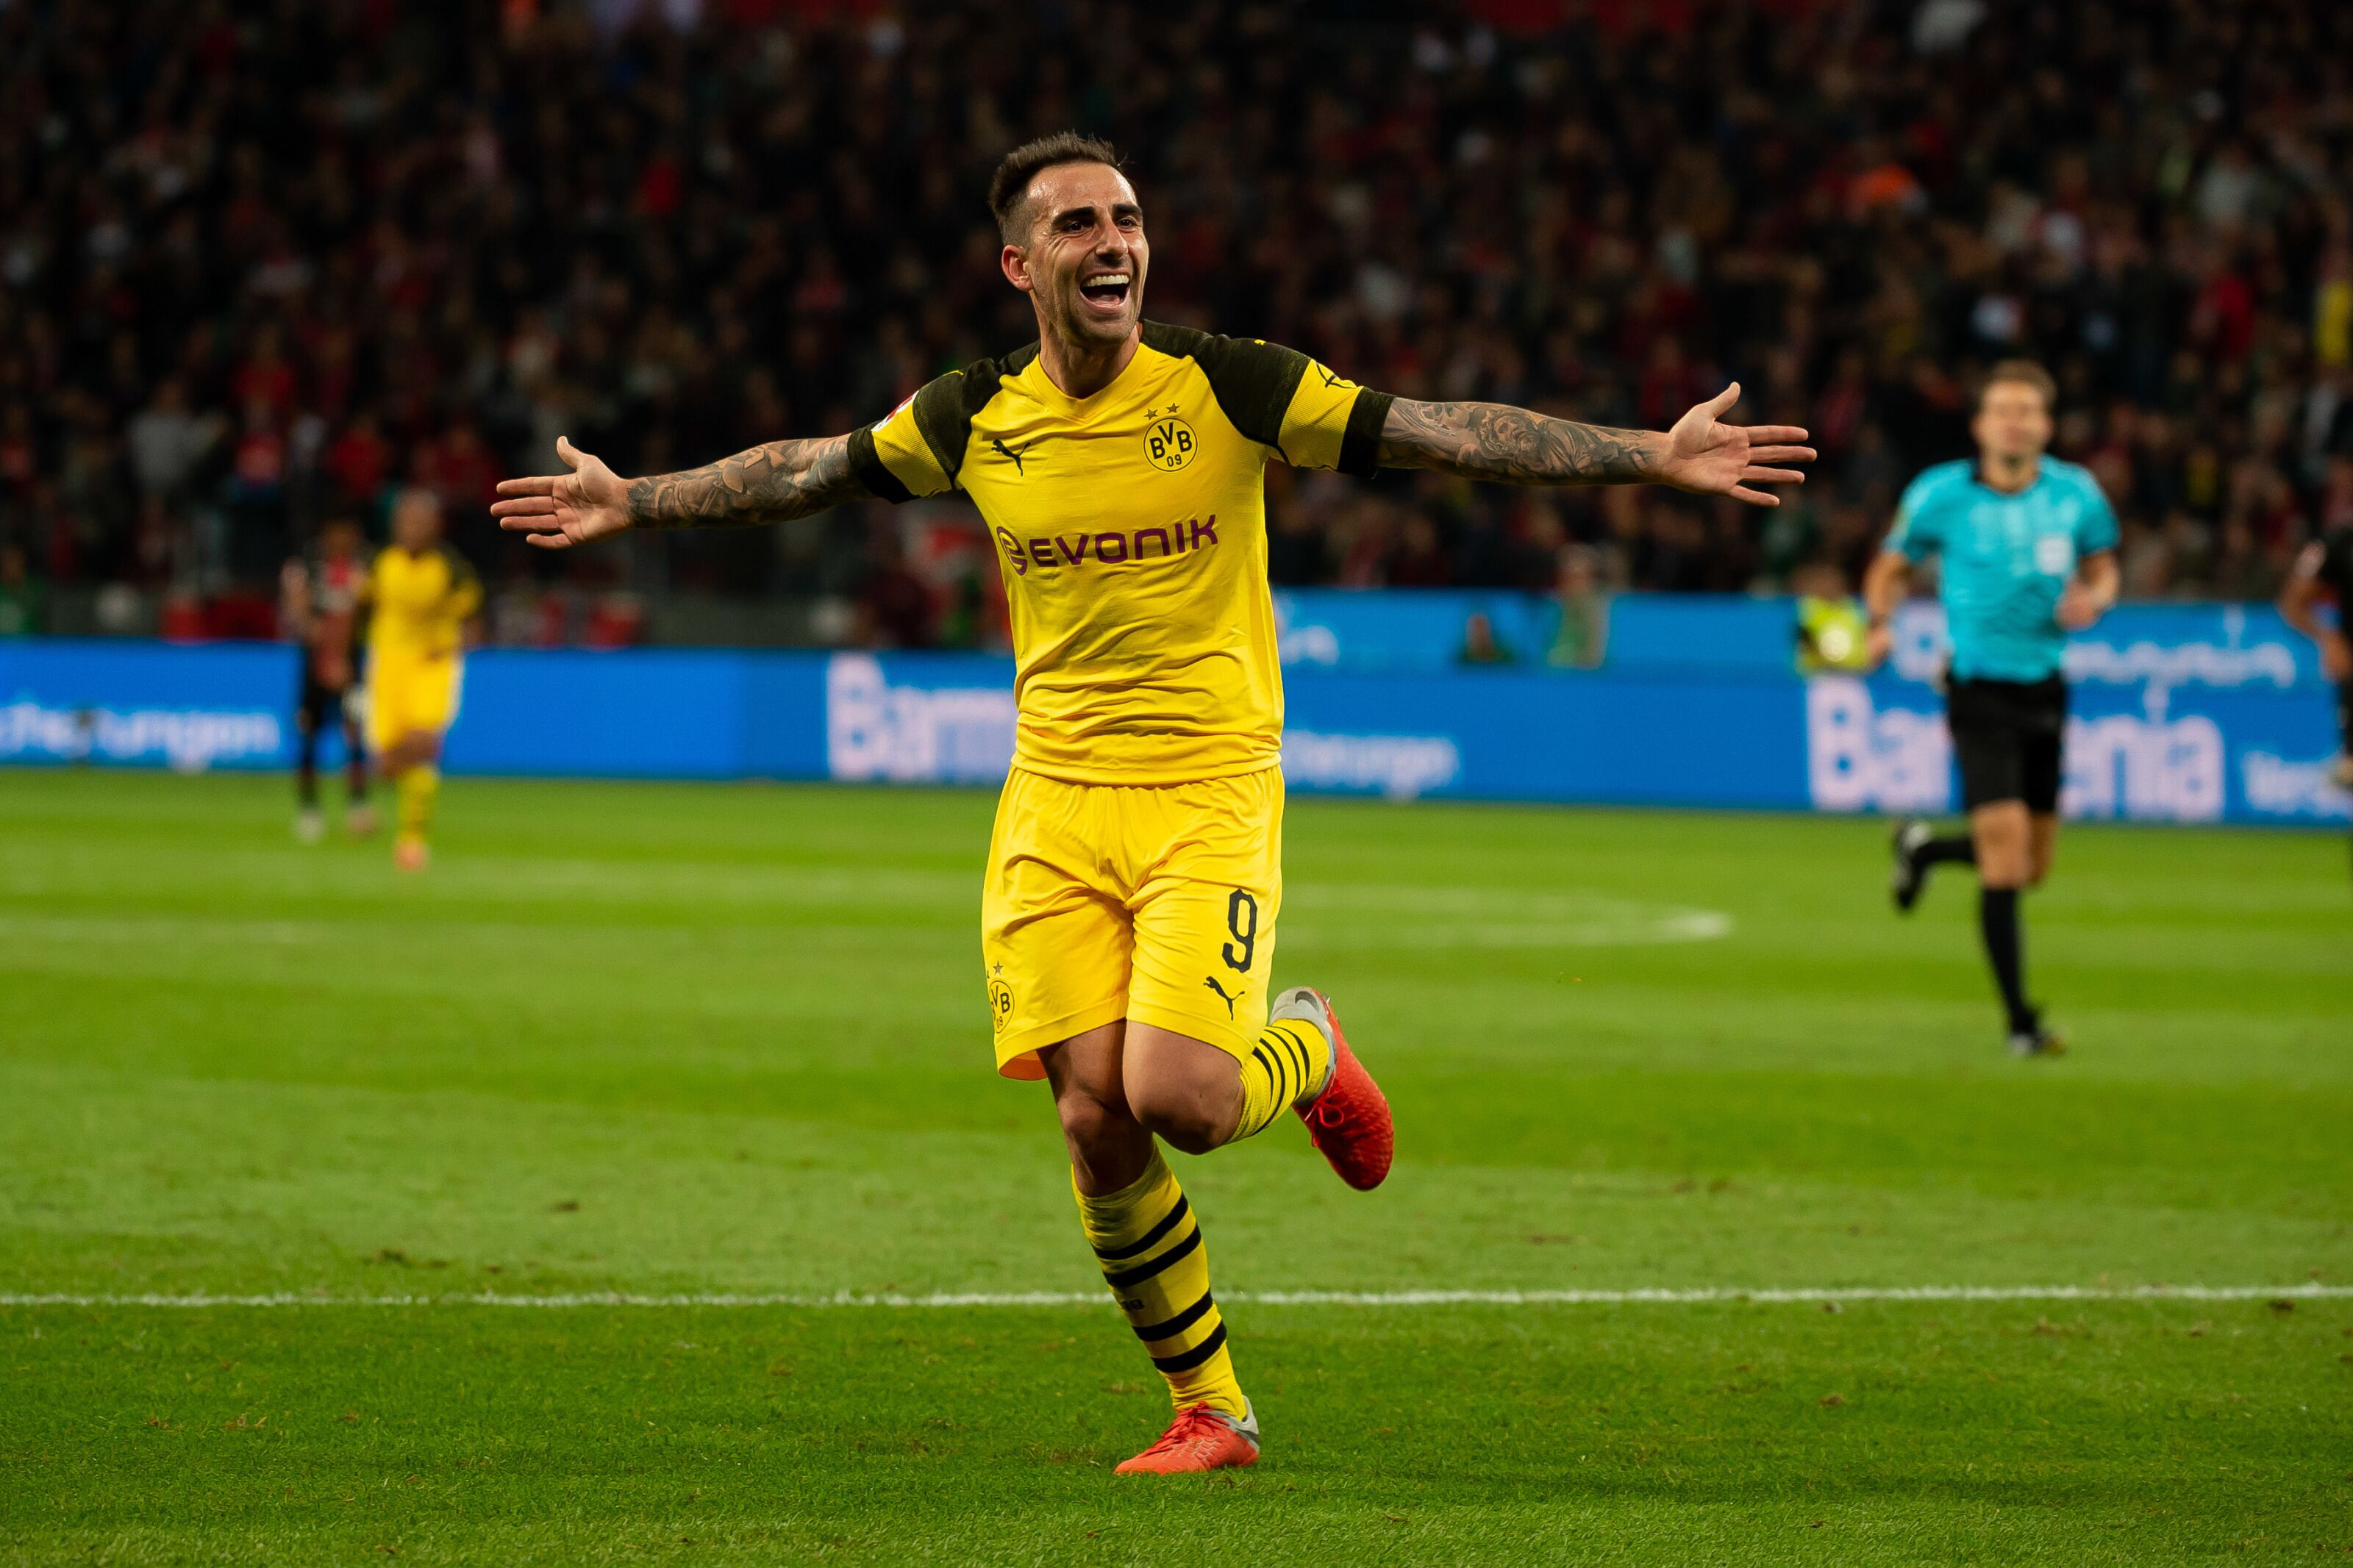 Why Borussia Dortmund should be excited to play Barcelona in the UCL